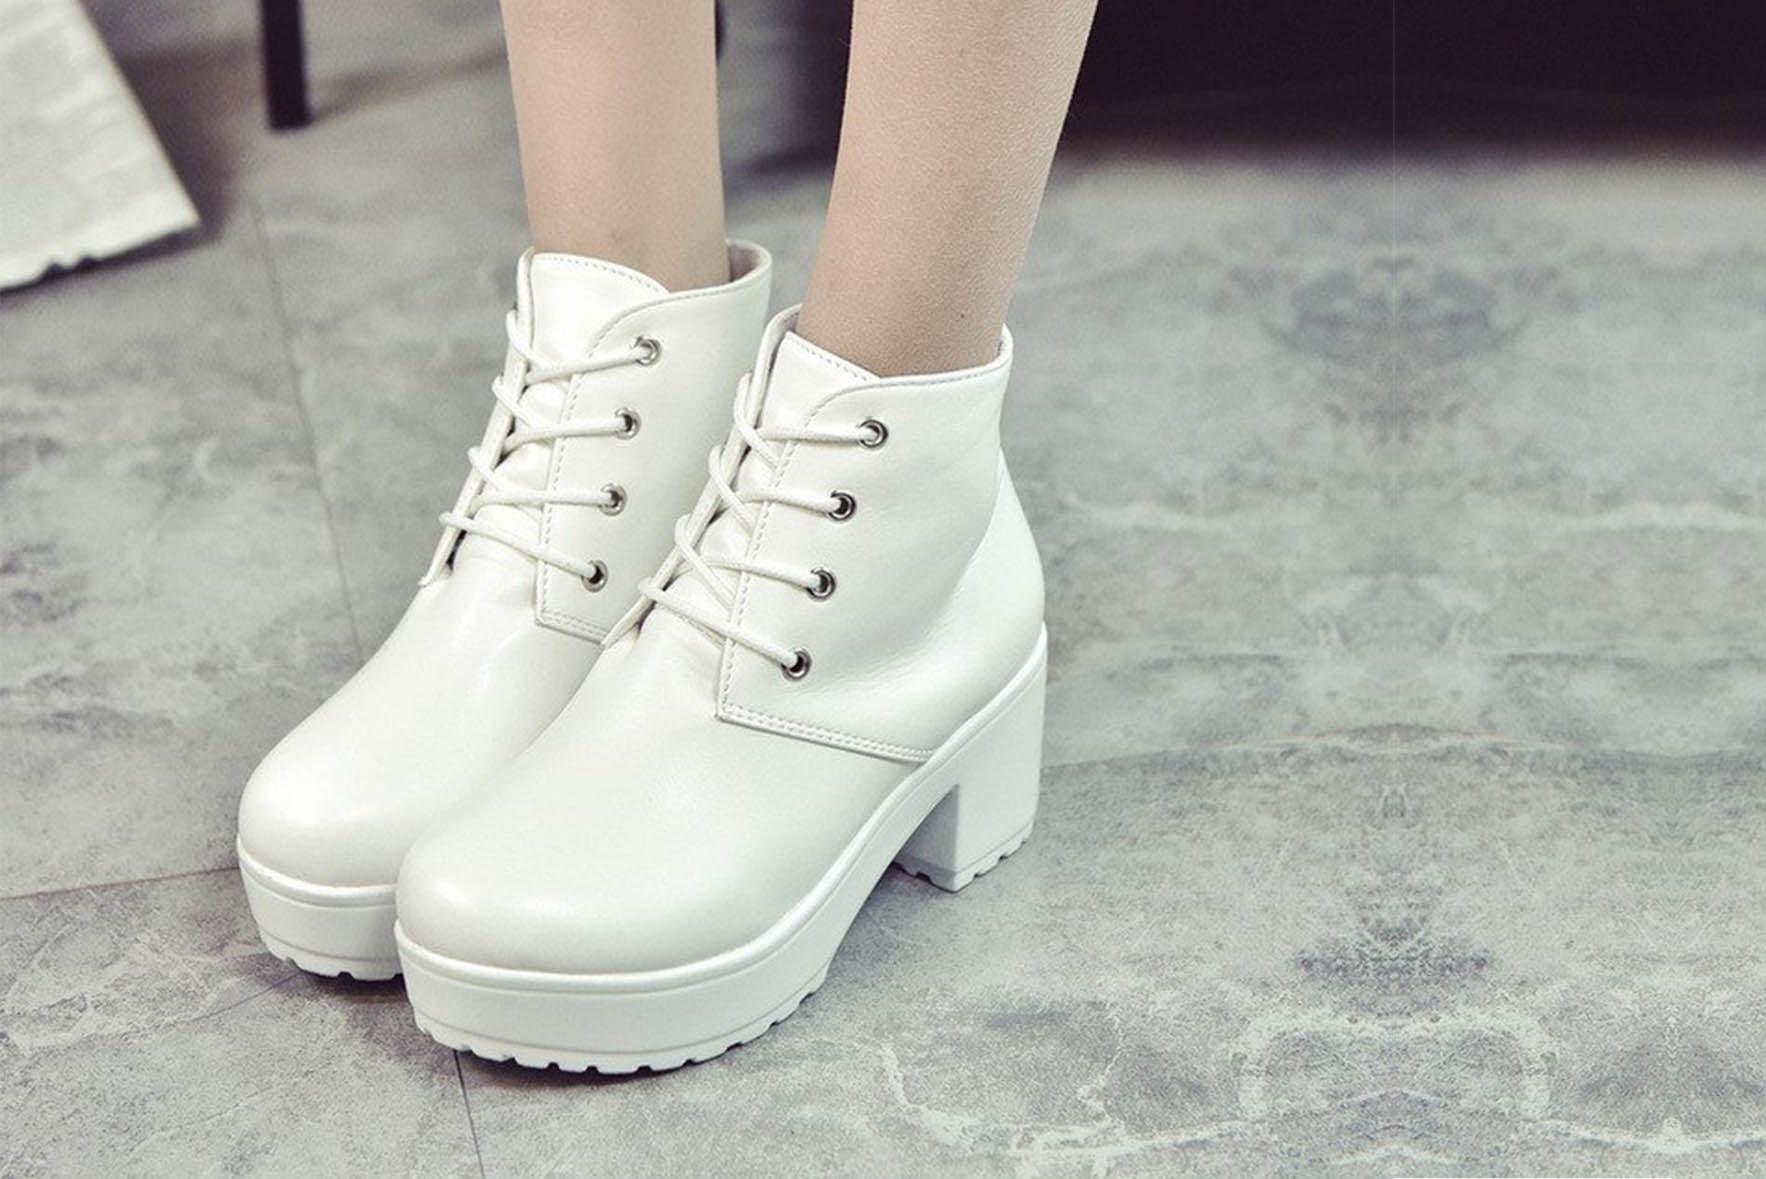 Winter Rough Boots White